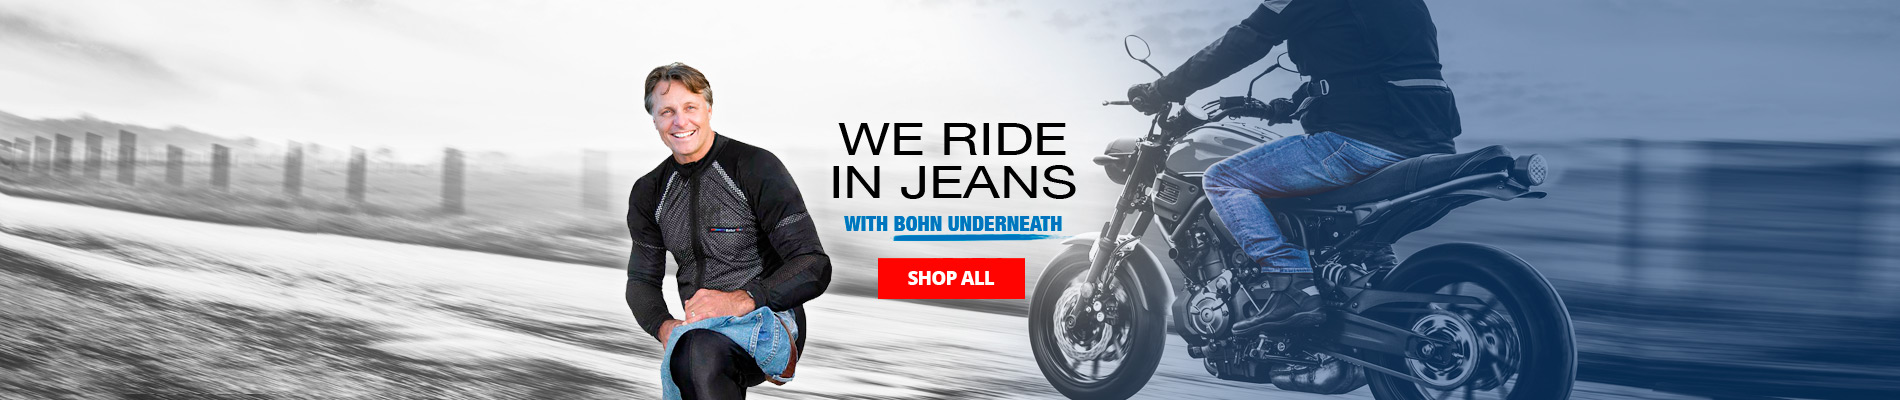 We ride in jeans graphic